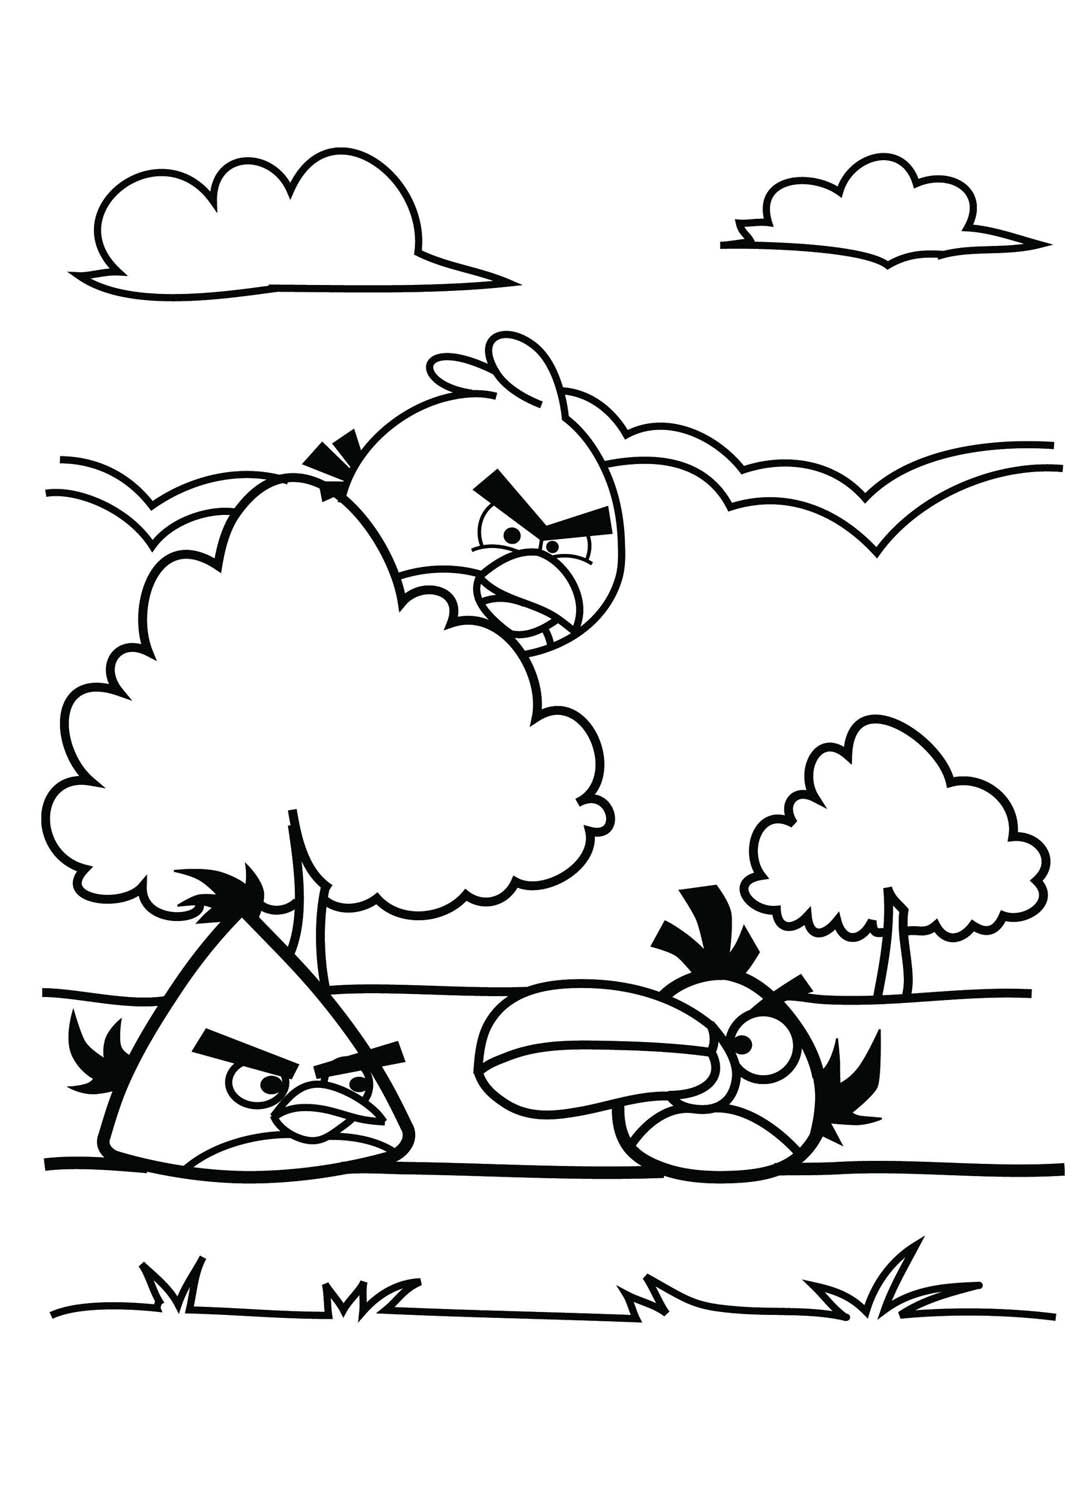 Simple Free Angry Birds Coloring Page To Print And Color